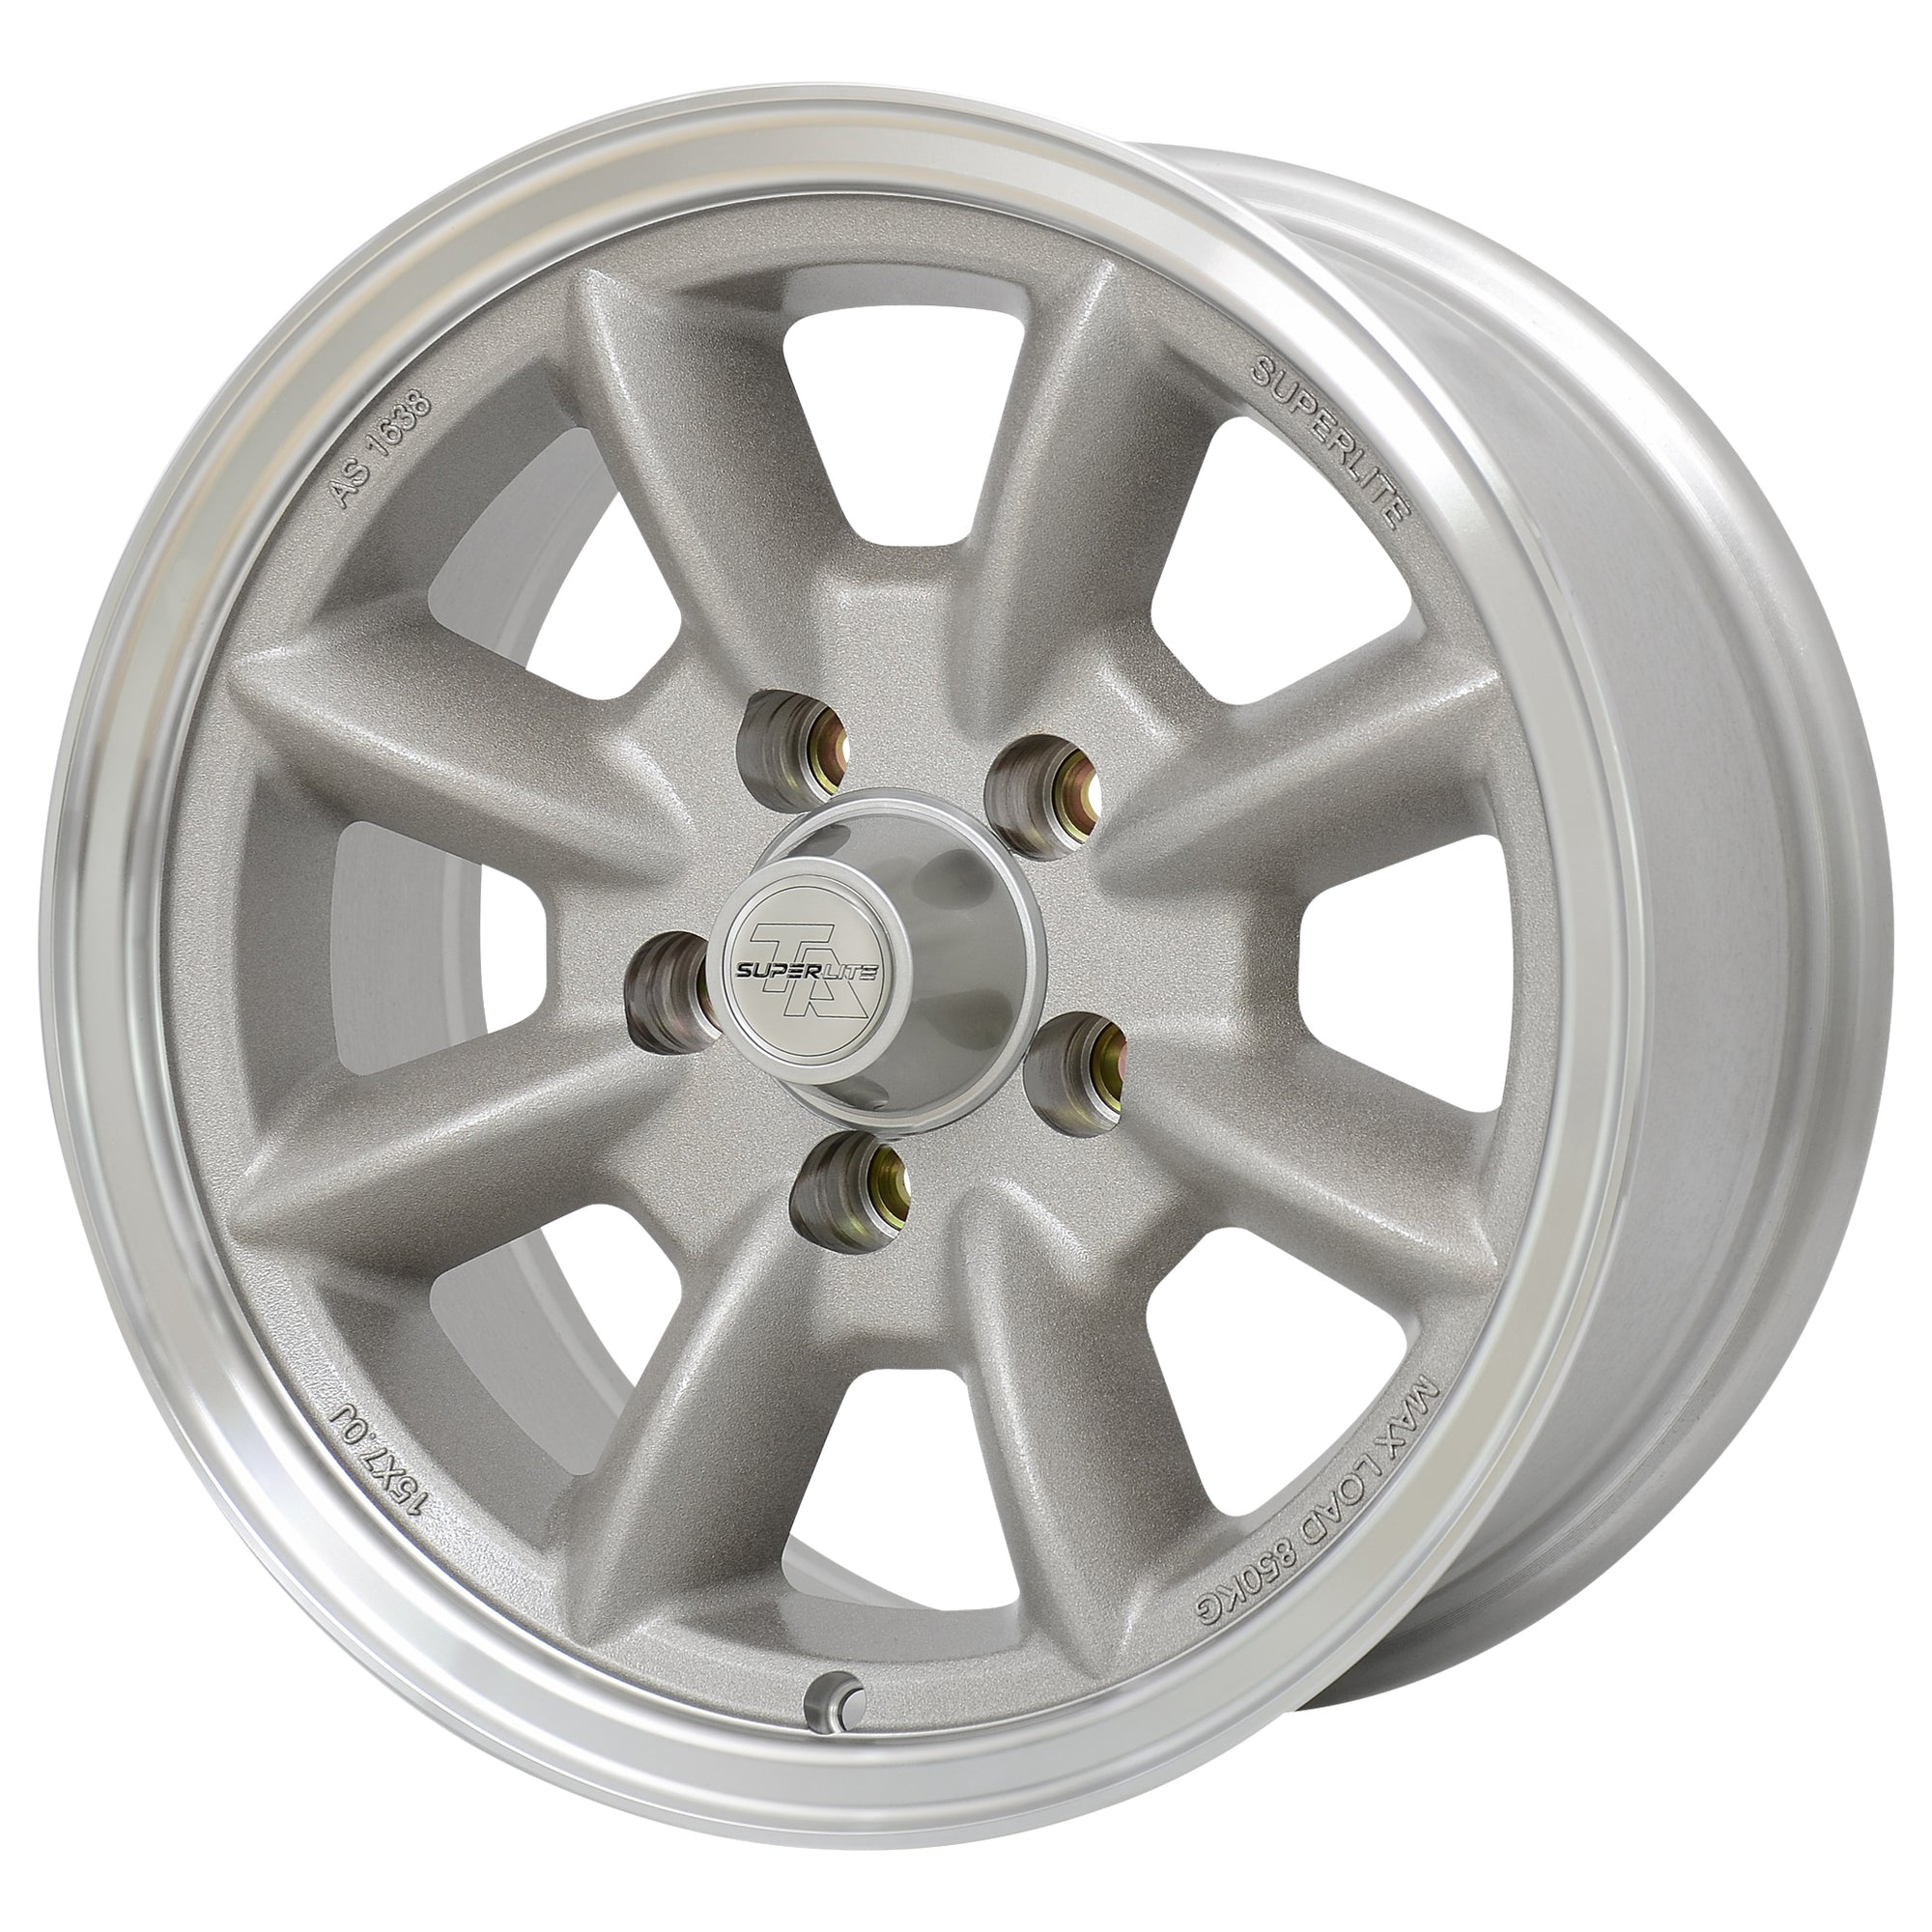 "Superlite 15x7 5x120.65 4.5"" Backspacing 73mm Centre Bore SPL157245"